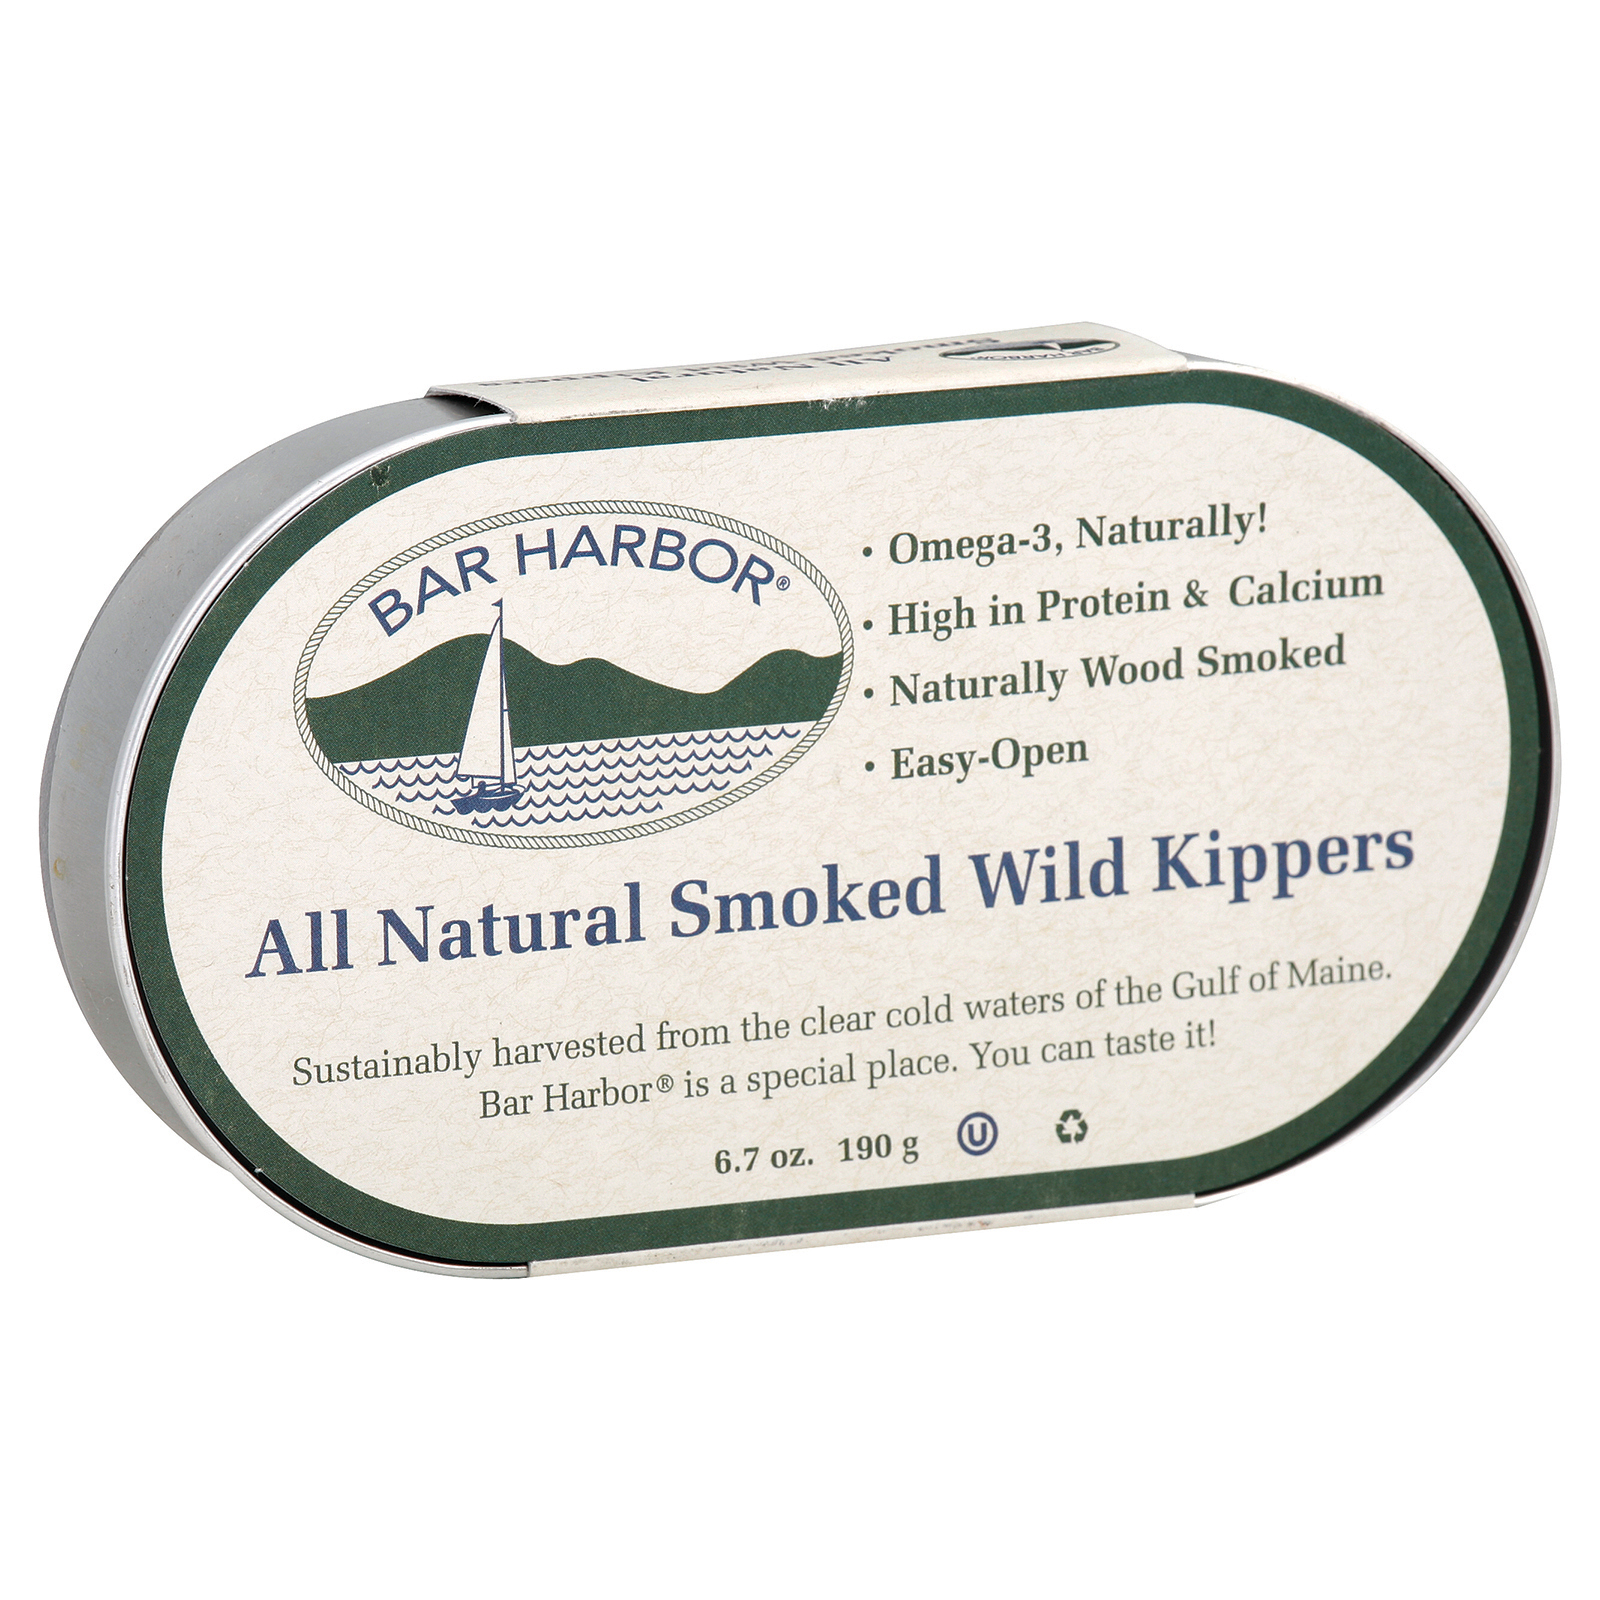 Bar Harbor Smoked Wild Kippers - Case of 12 - 6.7 oz.